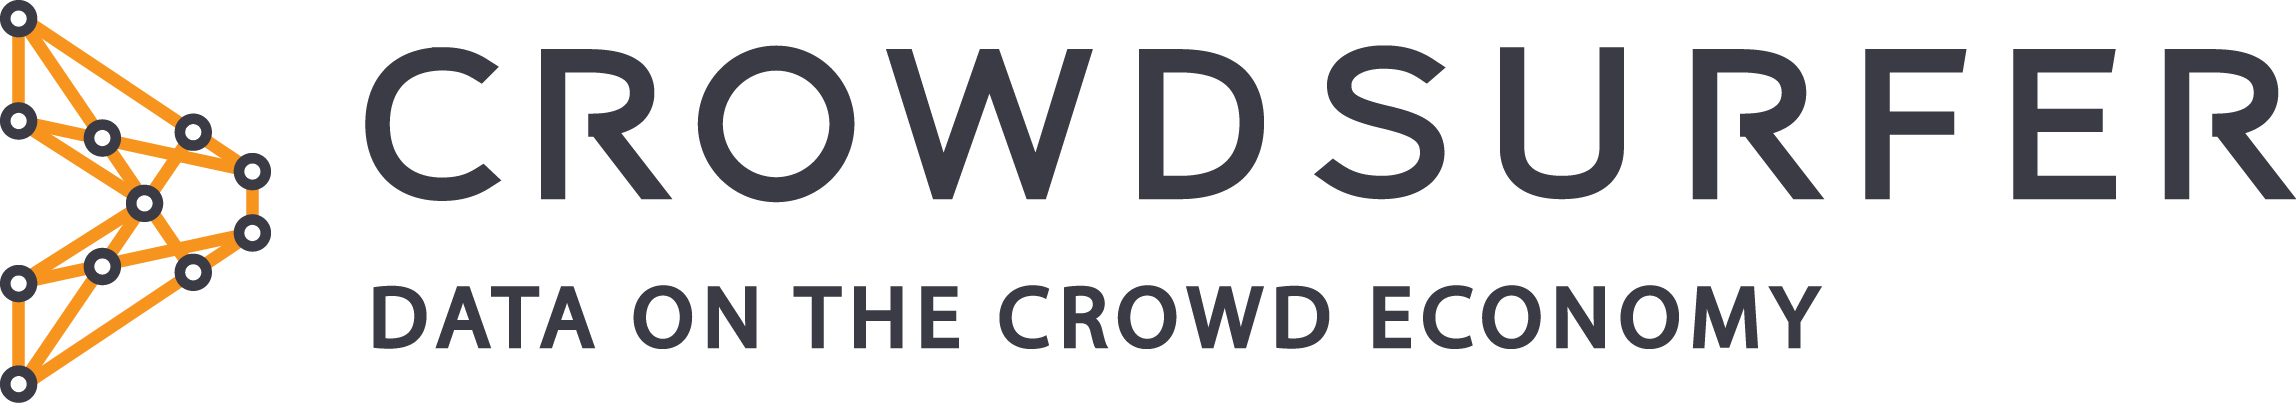 Crowdsurfer Adds Data of UK P2P Lender Zopa to Further Enhance Alternative Finance Analysis